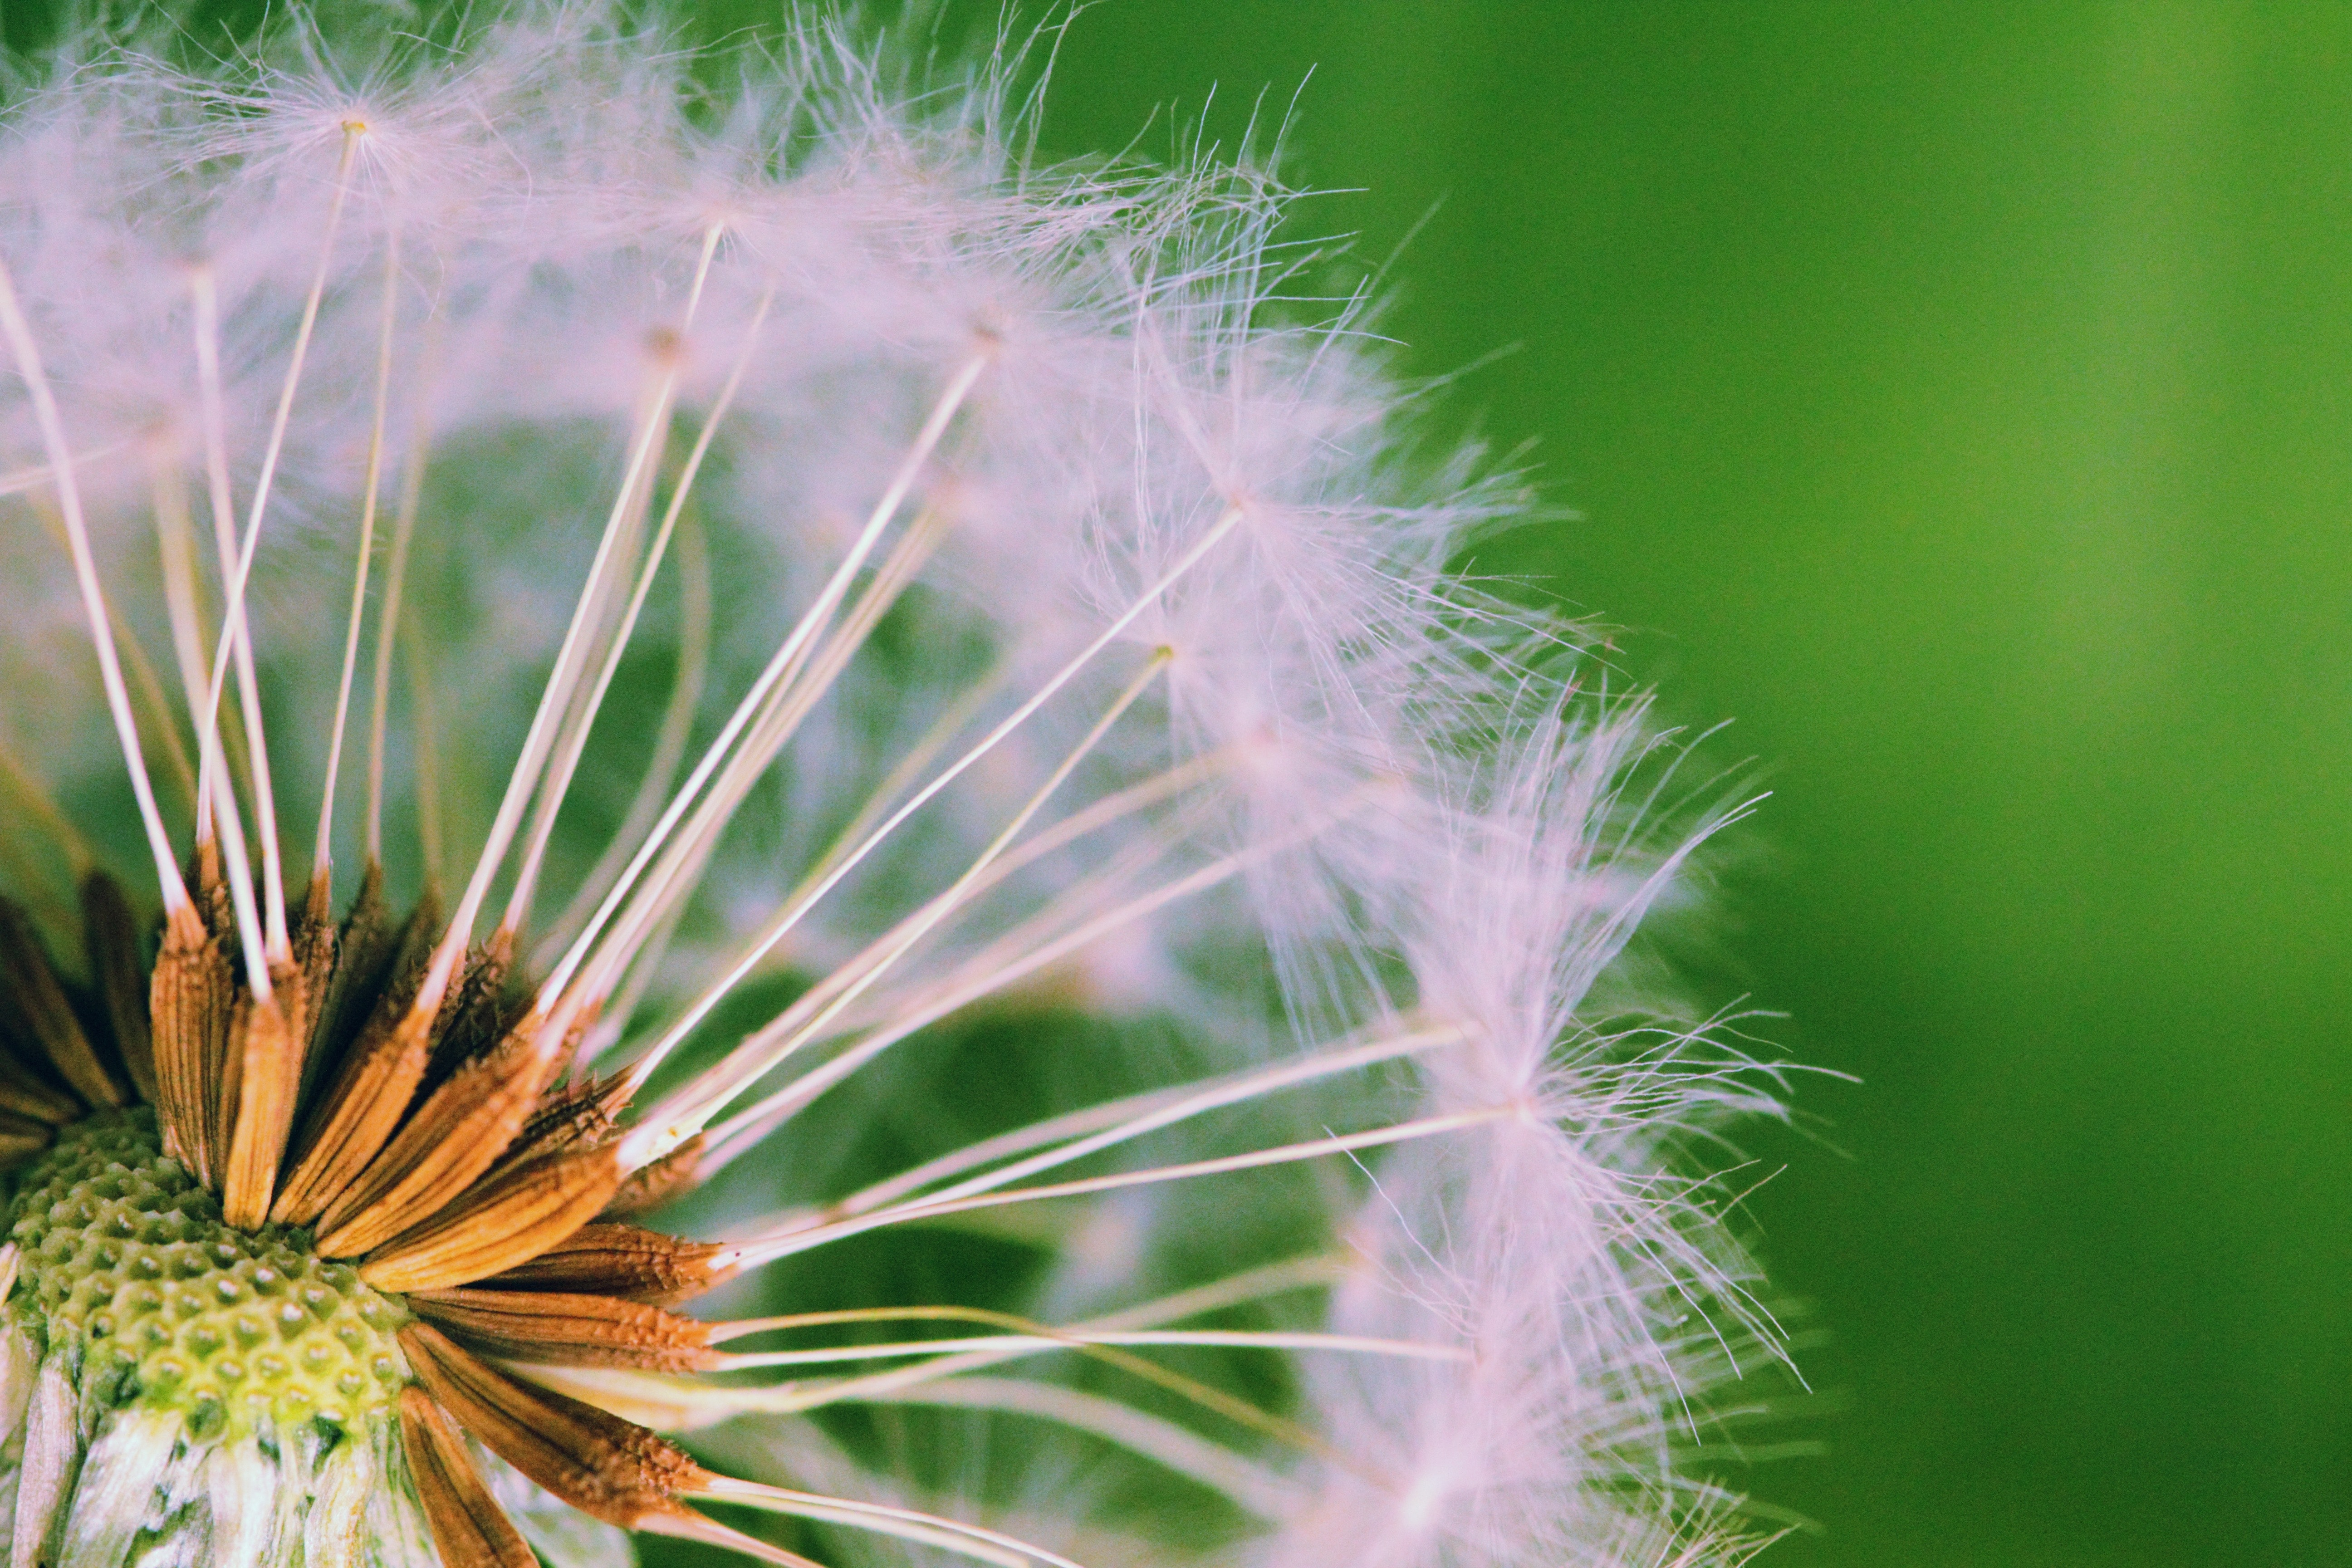 Closed Up Photograph of Dandelion Seeds, Blowball, Close-up, Dandelion, Dandelion seeds, HQ Photo